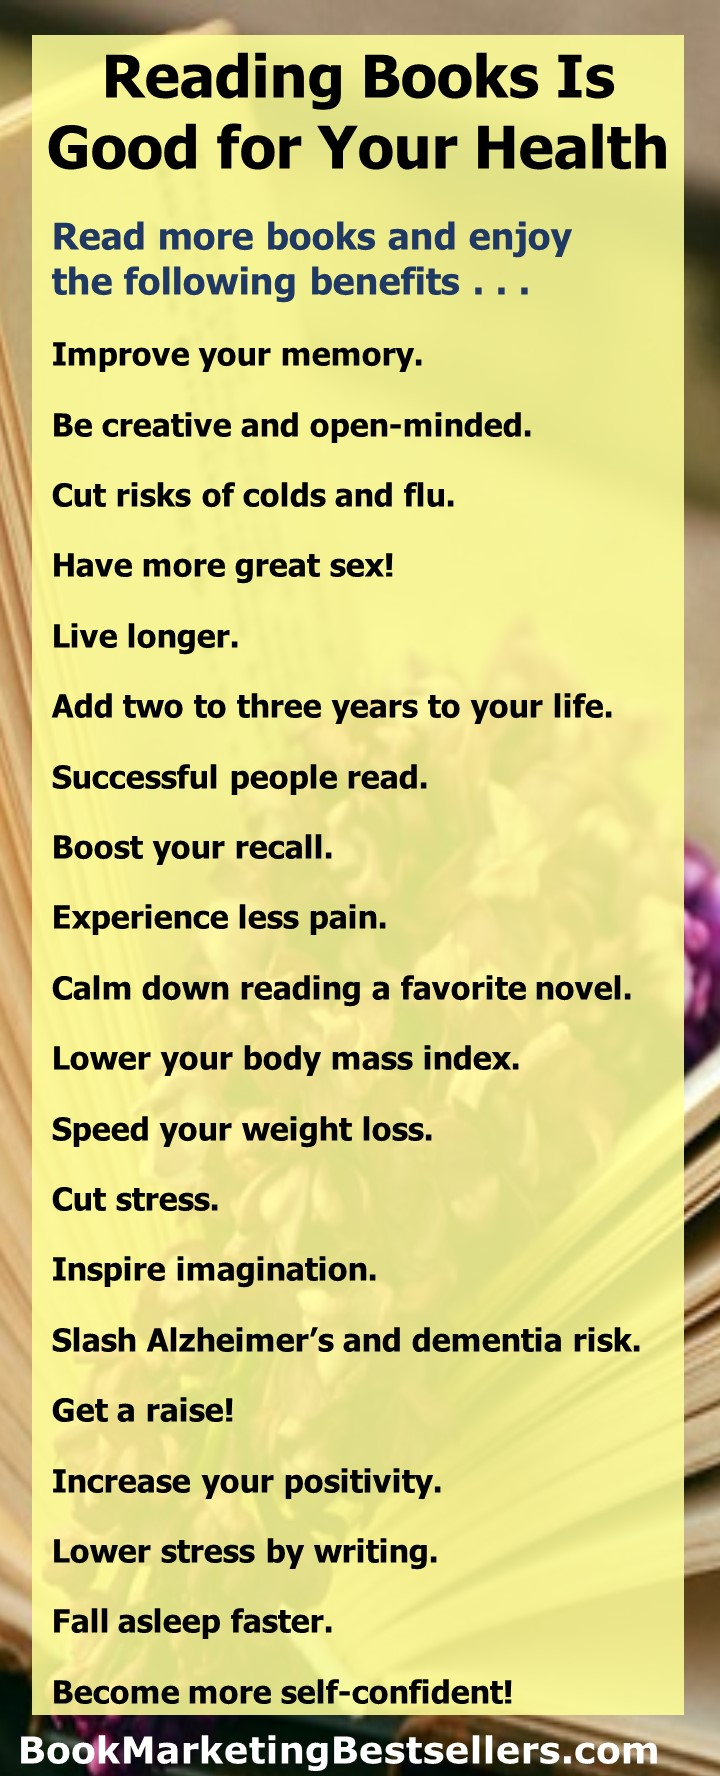 Reading Is Good for Your Health: Life longer, be creative, have more great sex, be successful, lower your body mass index, lose weight, cut your risks of colds and flu